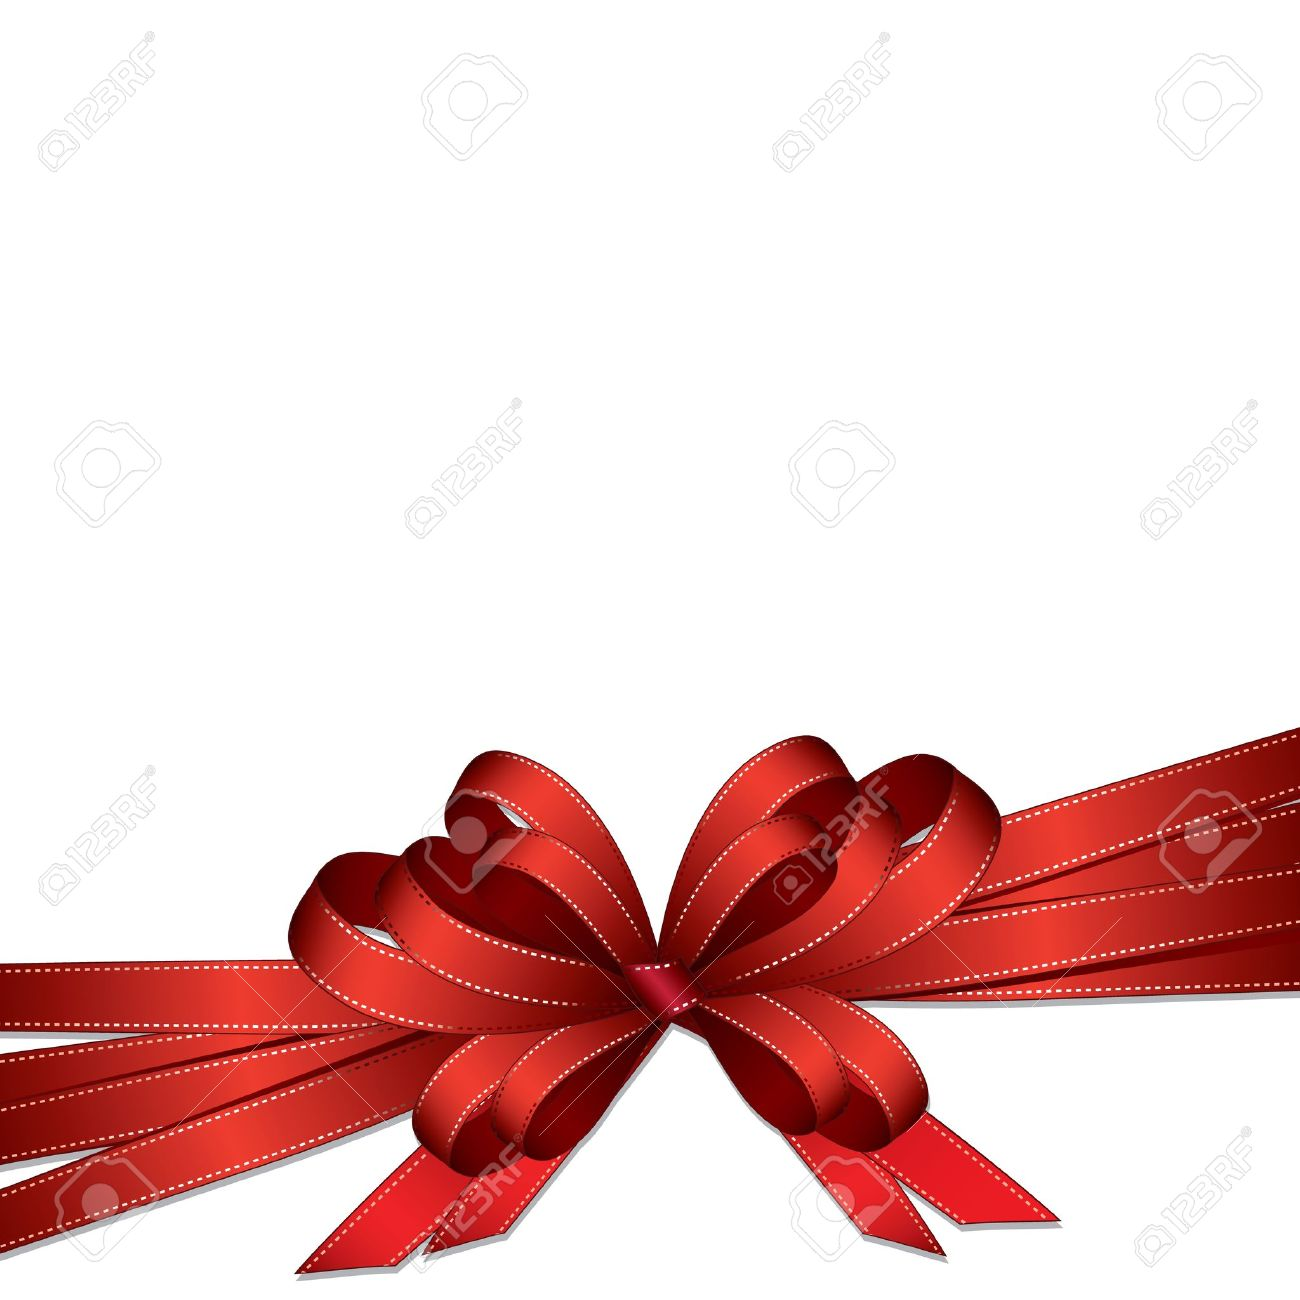 Gift Ribbon Royalty Free Cliparts, Vectors, And Stock Illustration ...